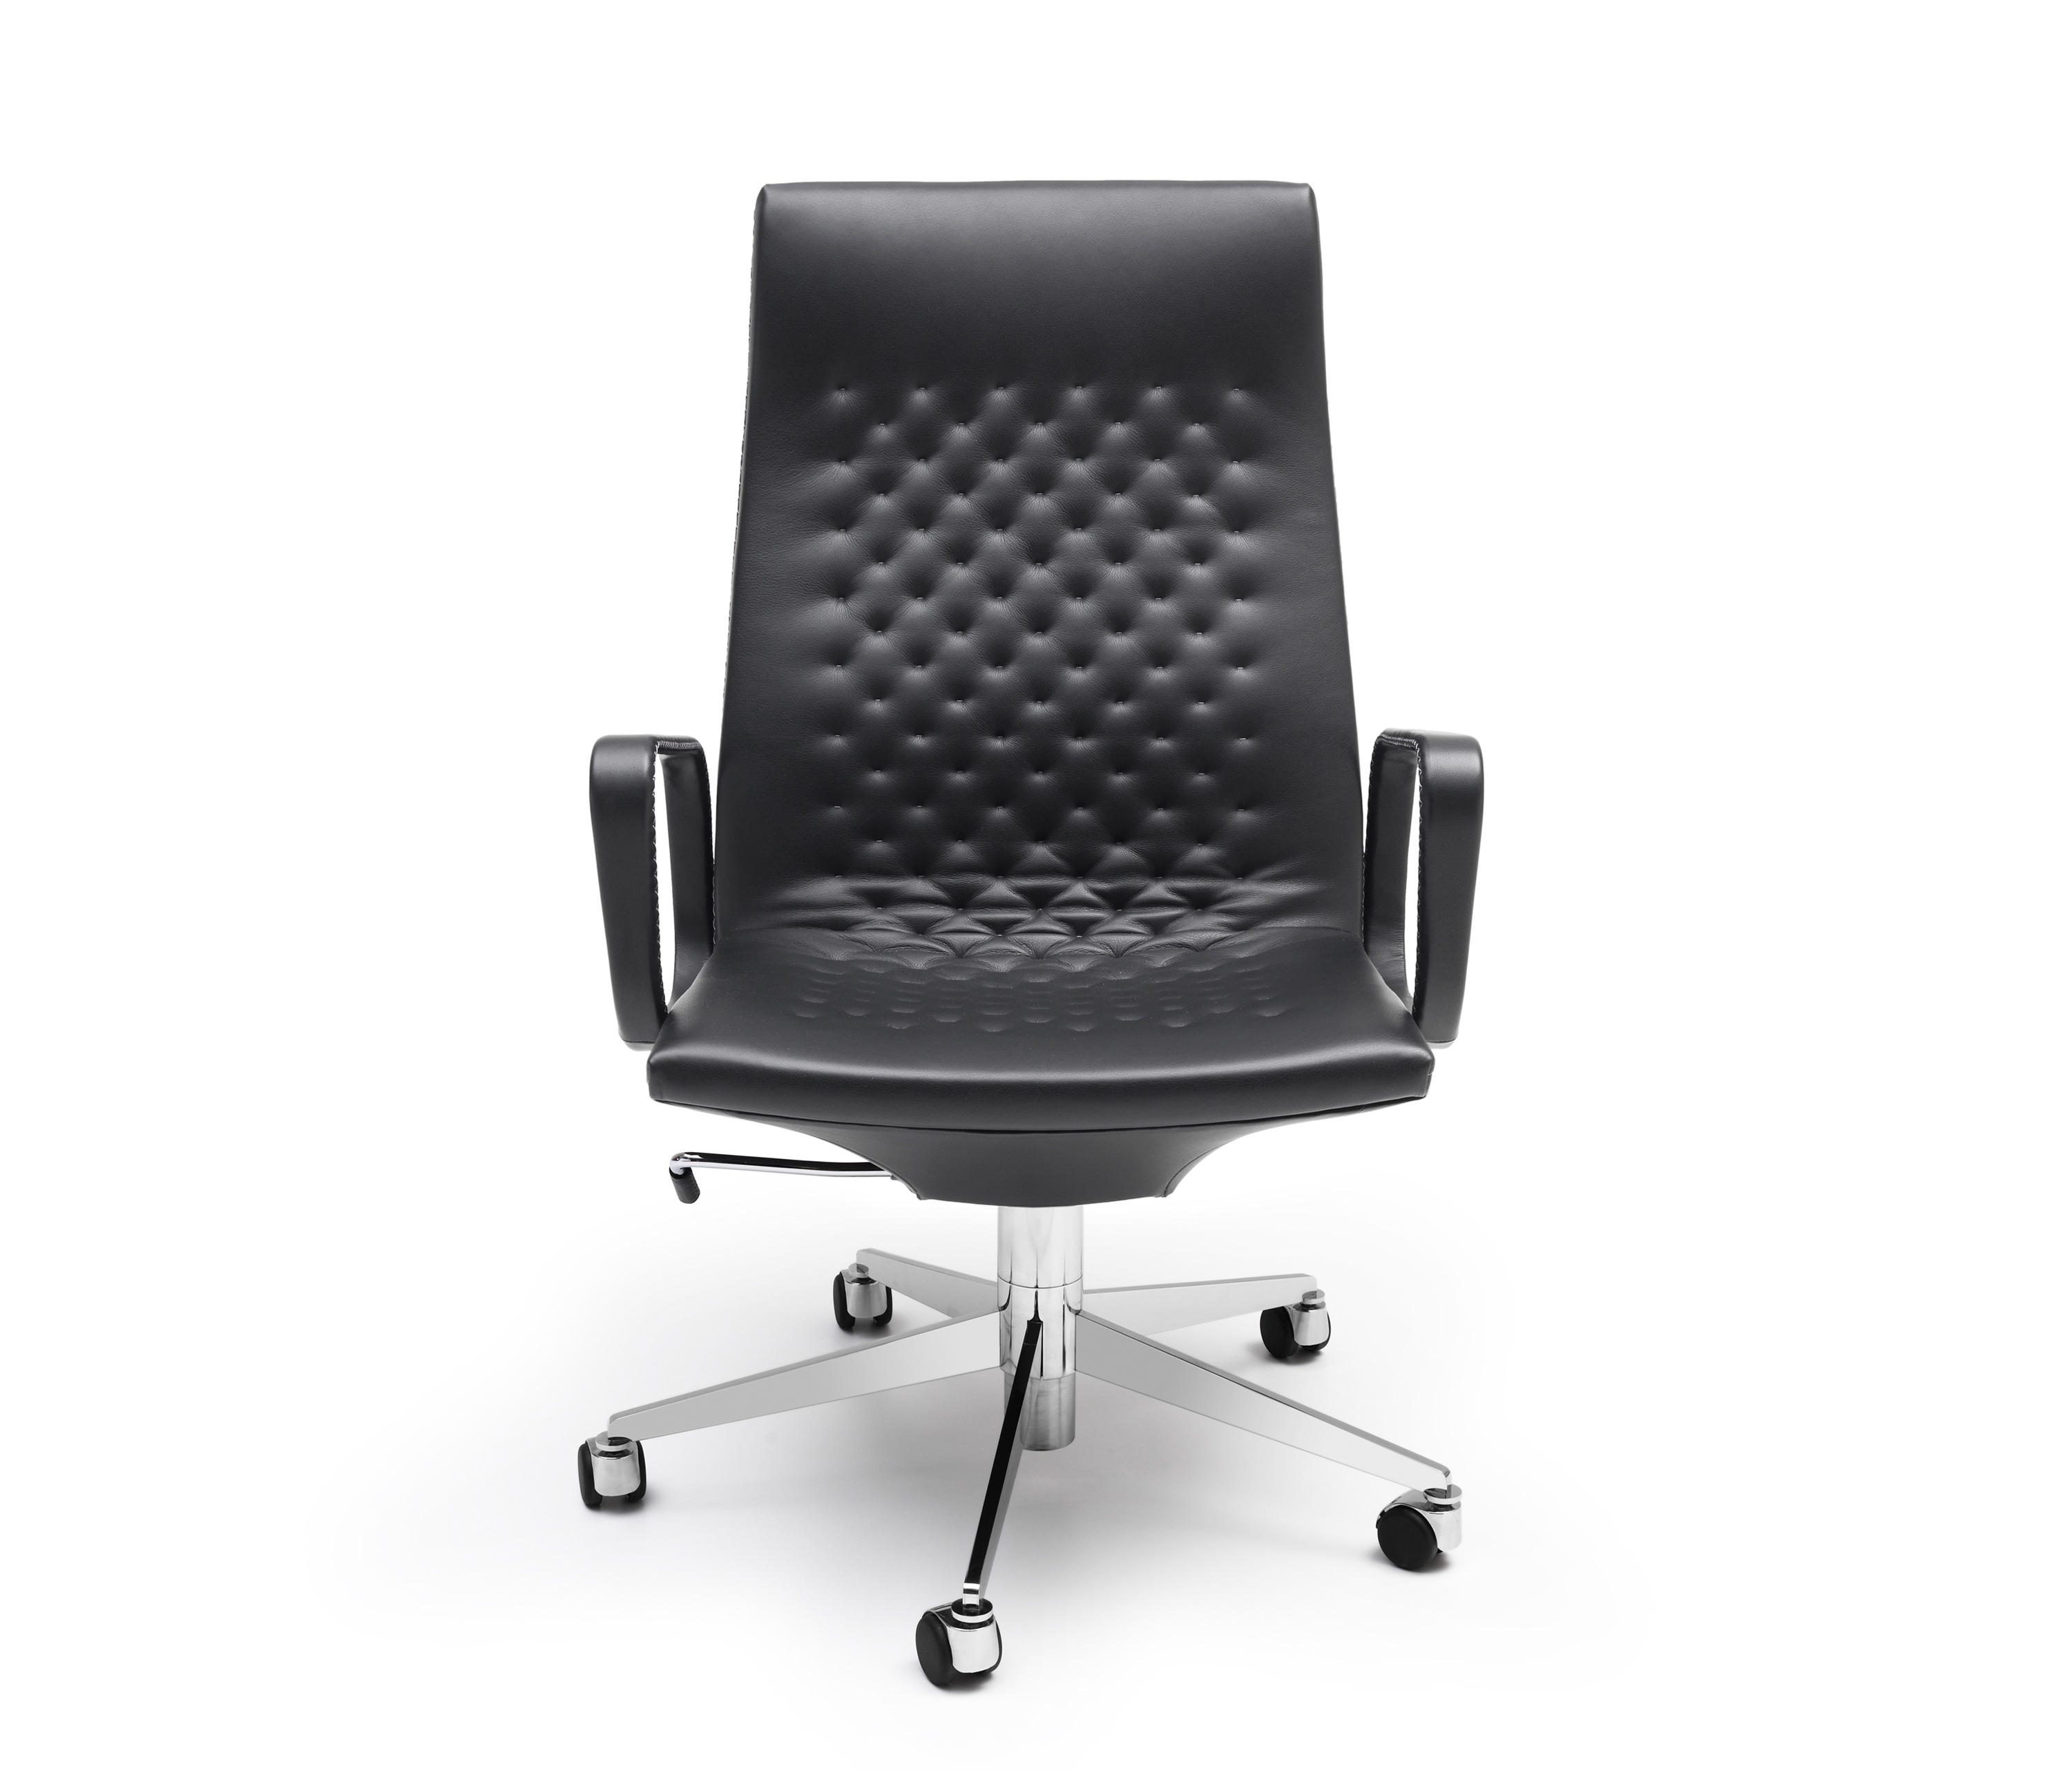 DS 1051 Executive chairs from de Sede